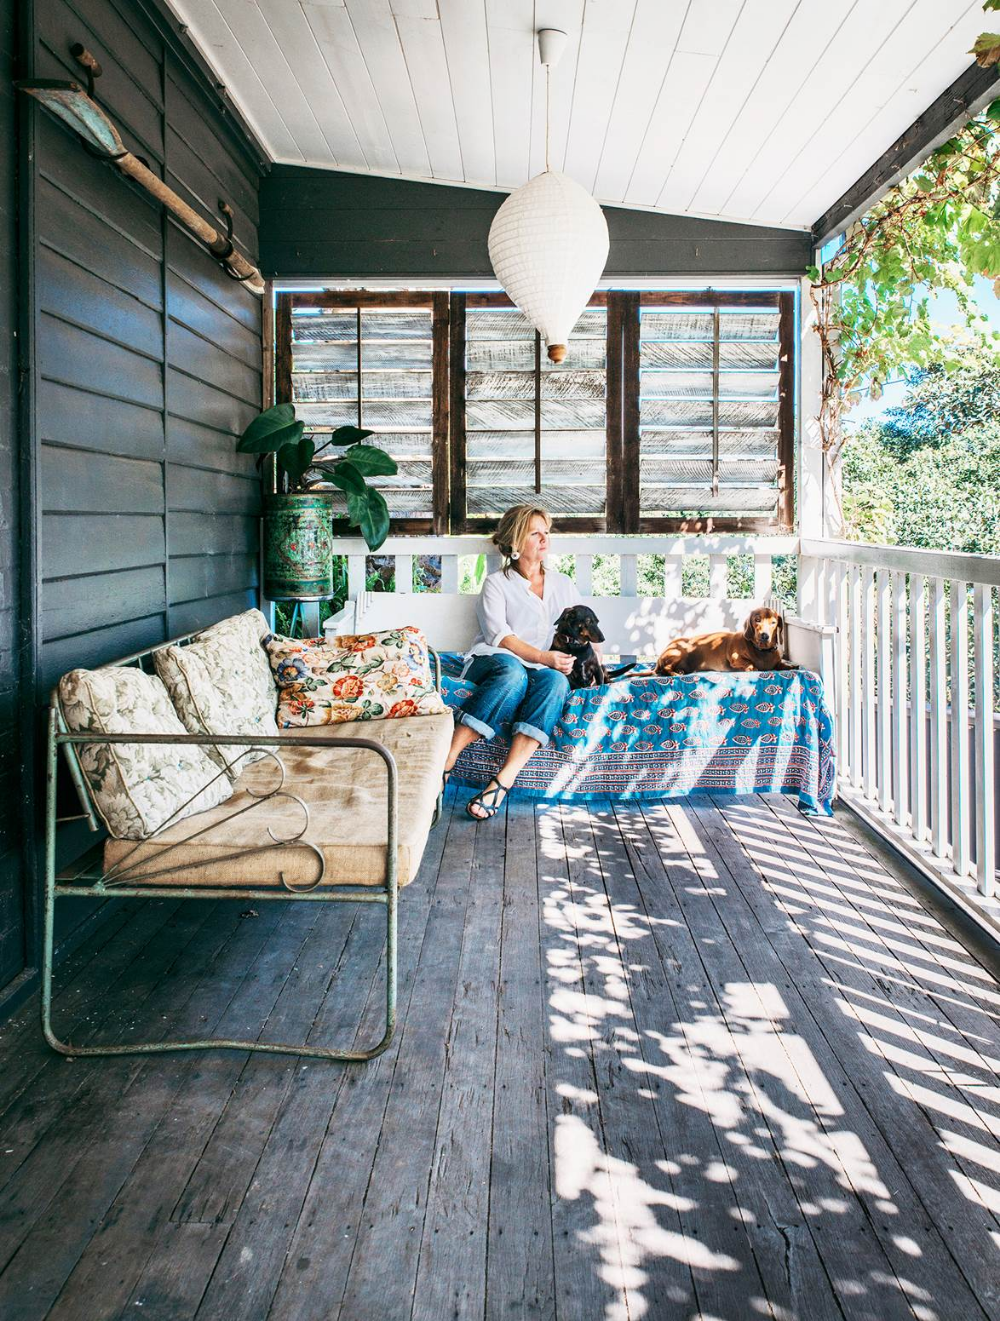 Eclectic Style Shines In This Charming Brooklyn Cottage ... on Riverside Outdoor Living id=86898